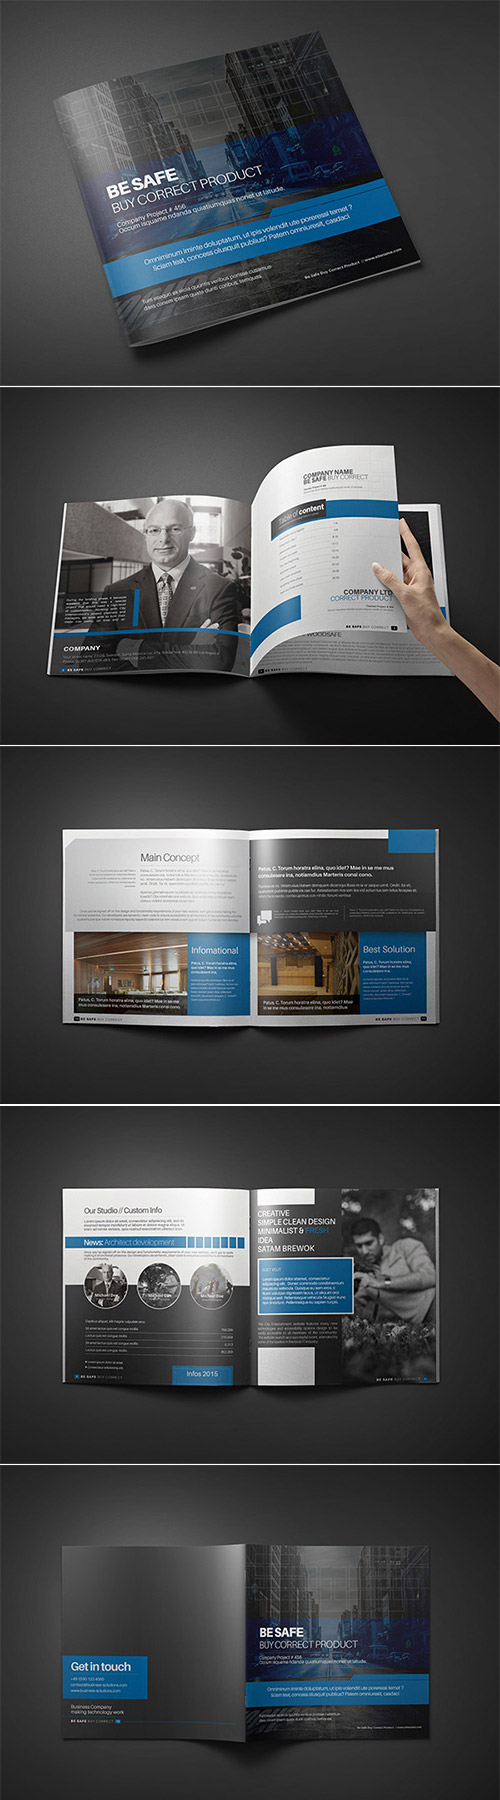 dark square brochure